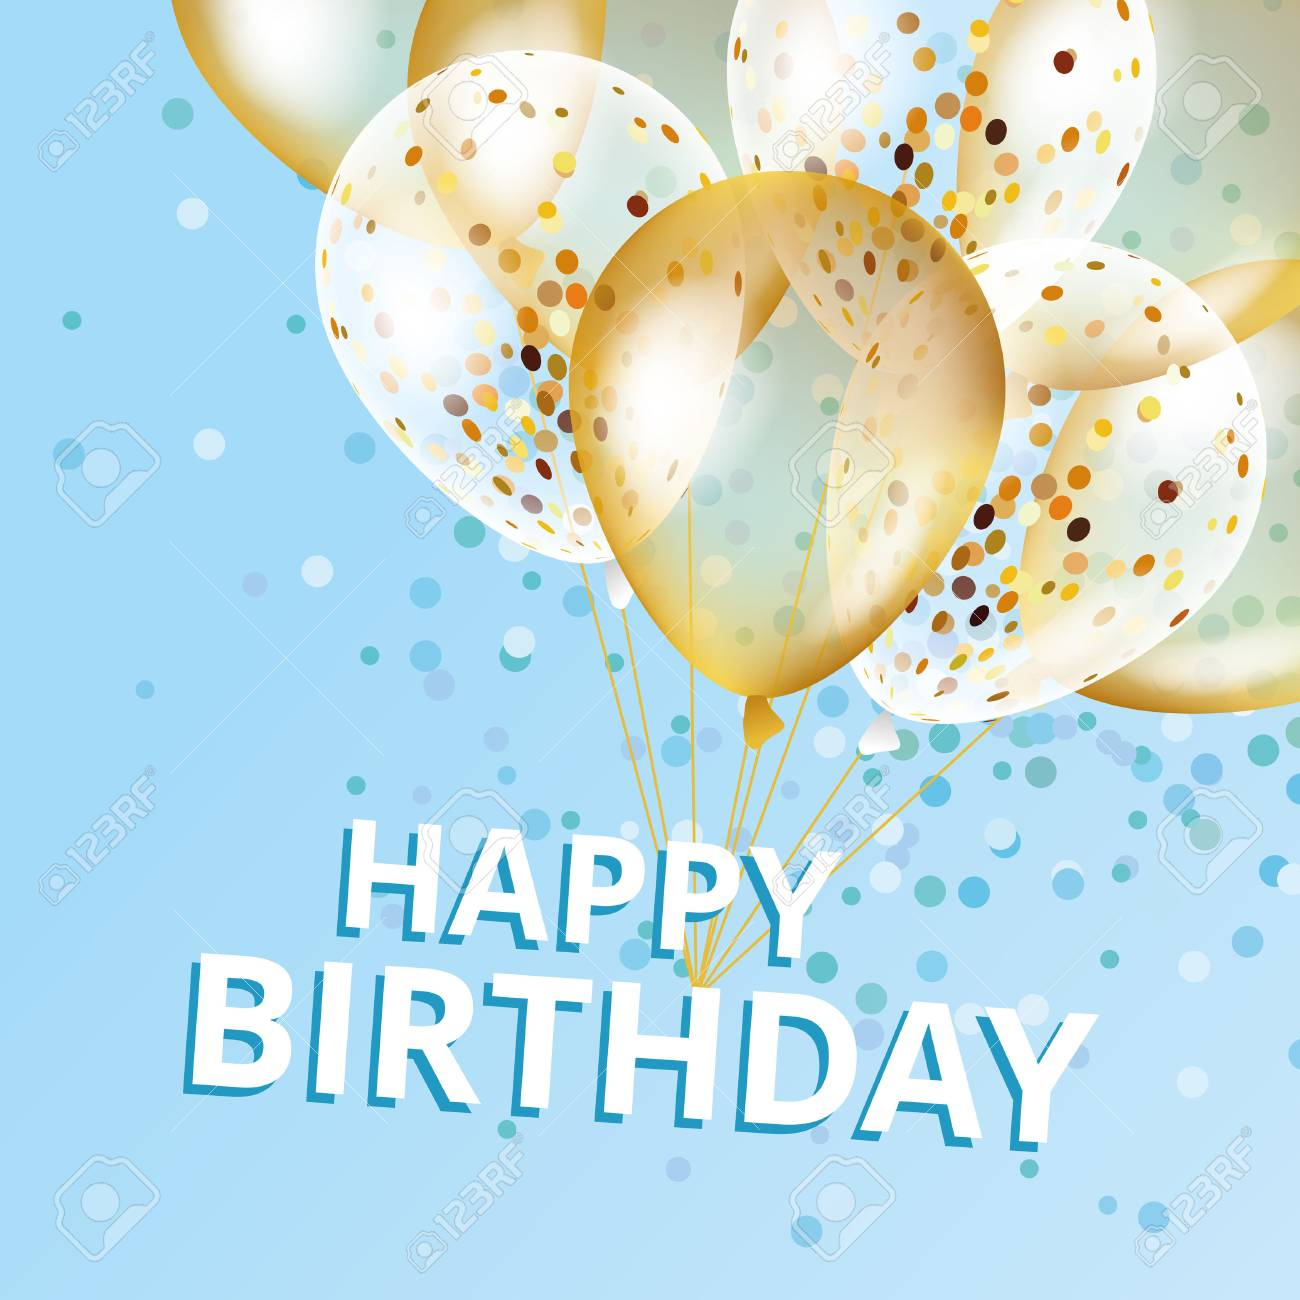 Balloons Happy Birthday Gold And Blue Balloons Background Happy Royalty Free Cliparts Vectors And Stock Illustration Image 72562420